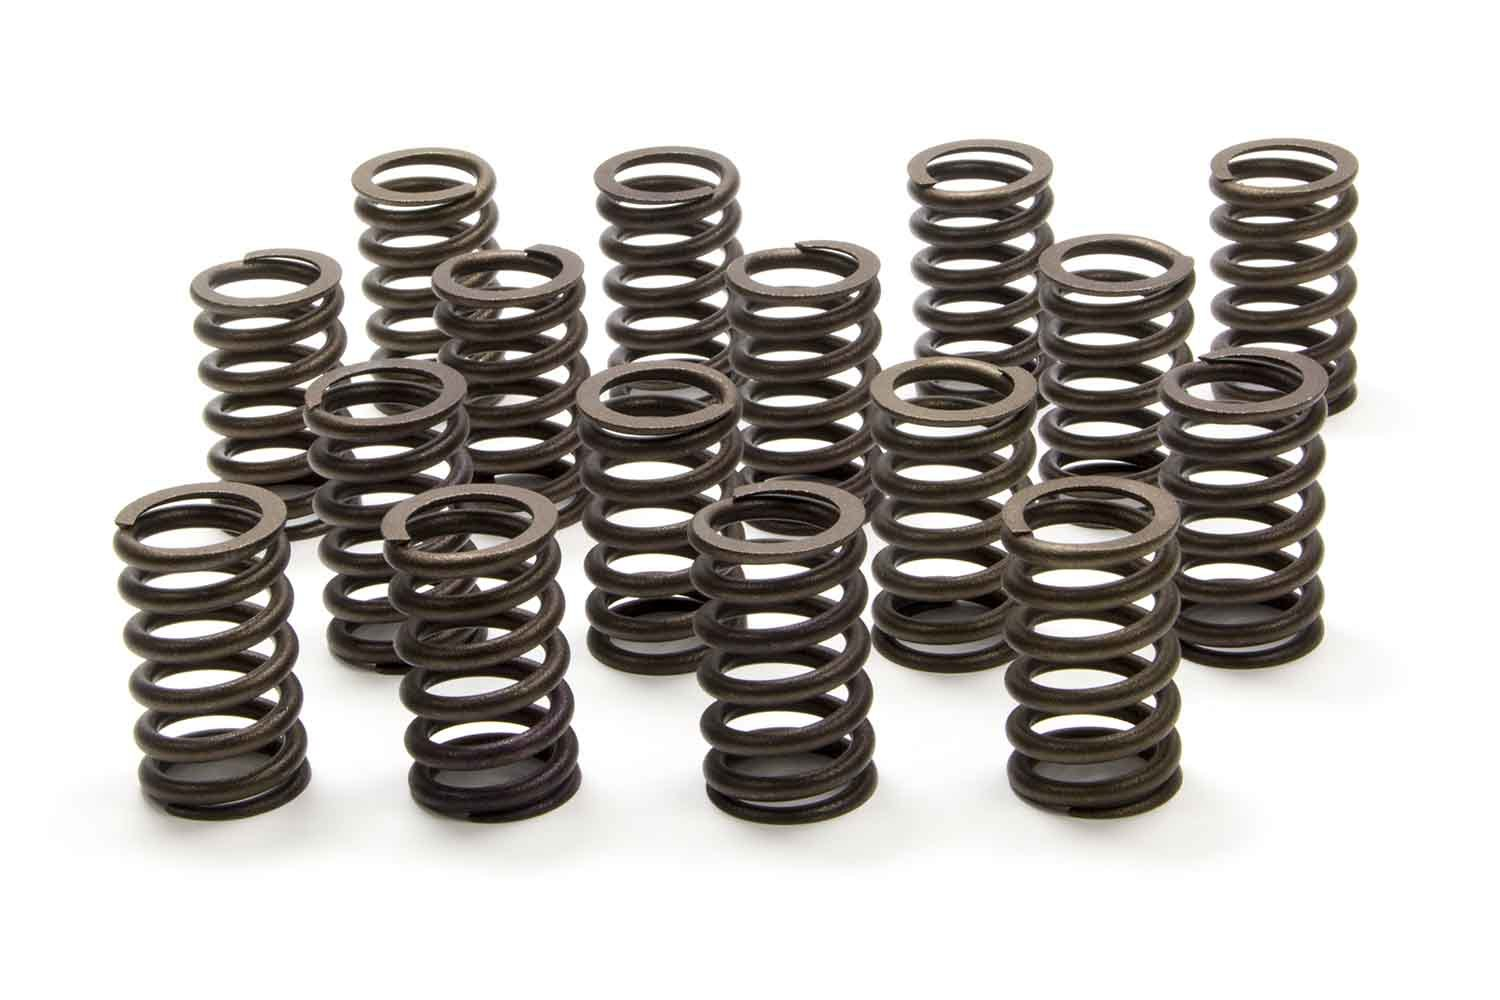 CHEVROLET PERFORMANCE 1.250 Valve Springs - SBC for 602 Crate Engine